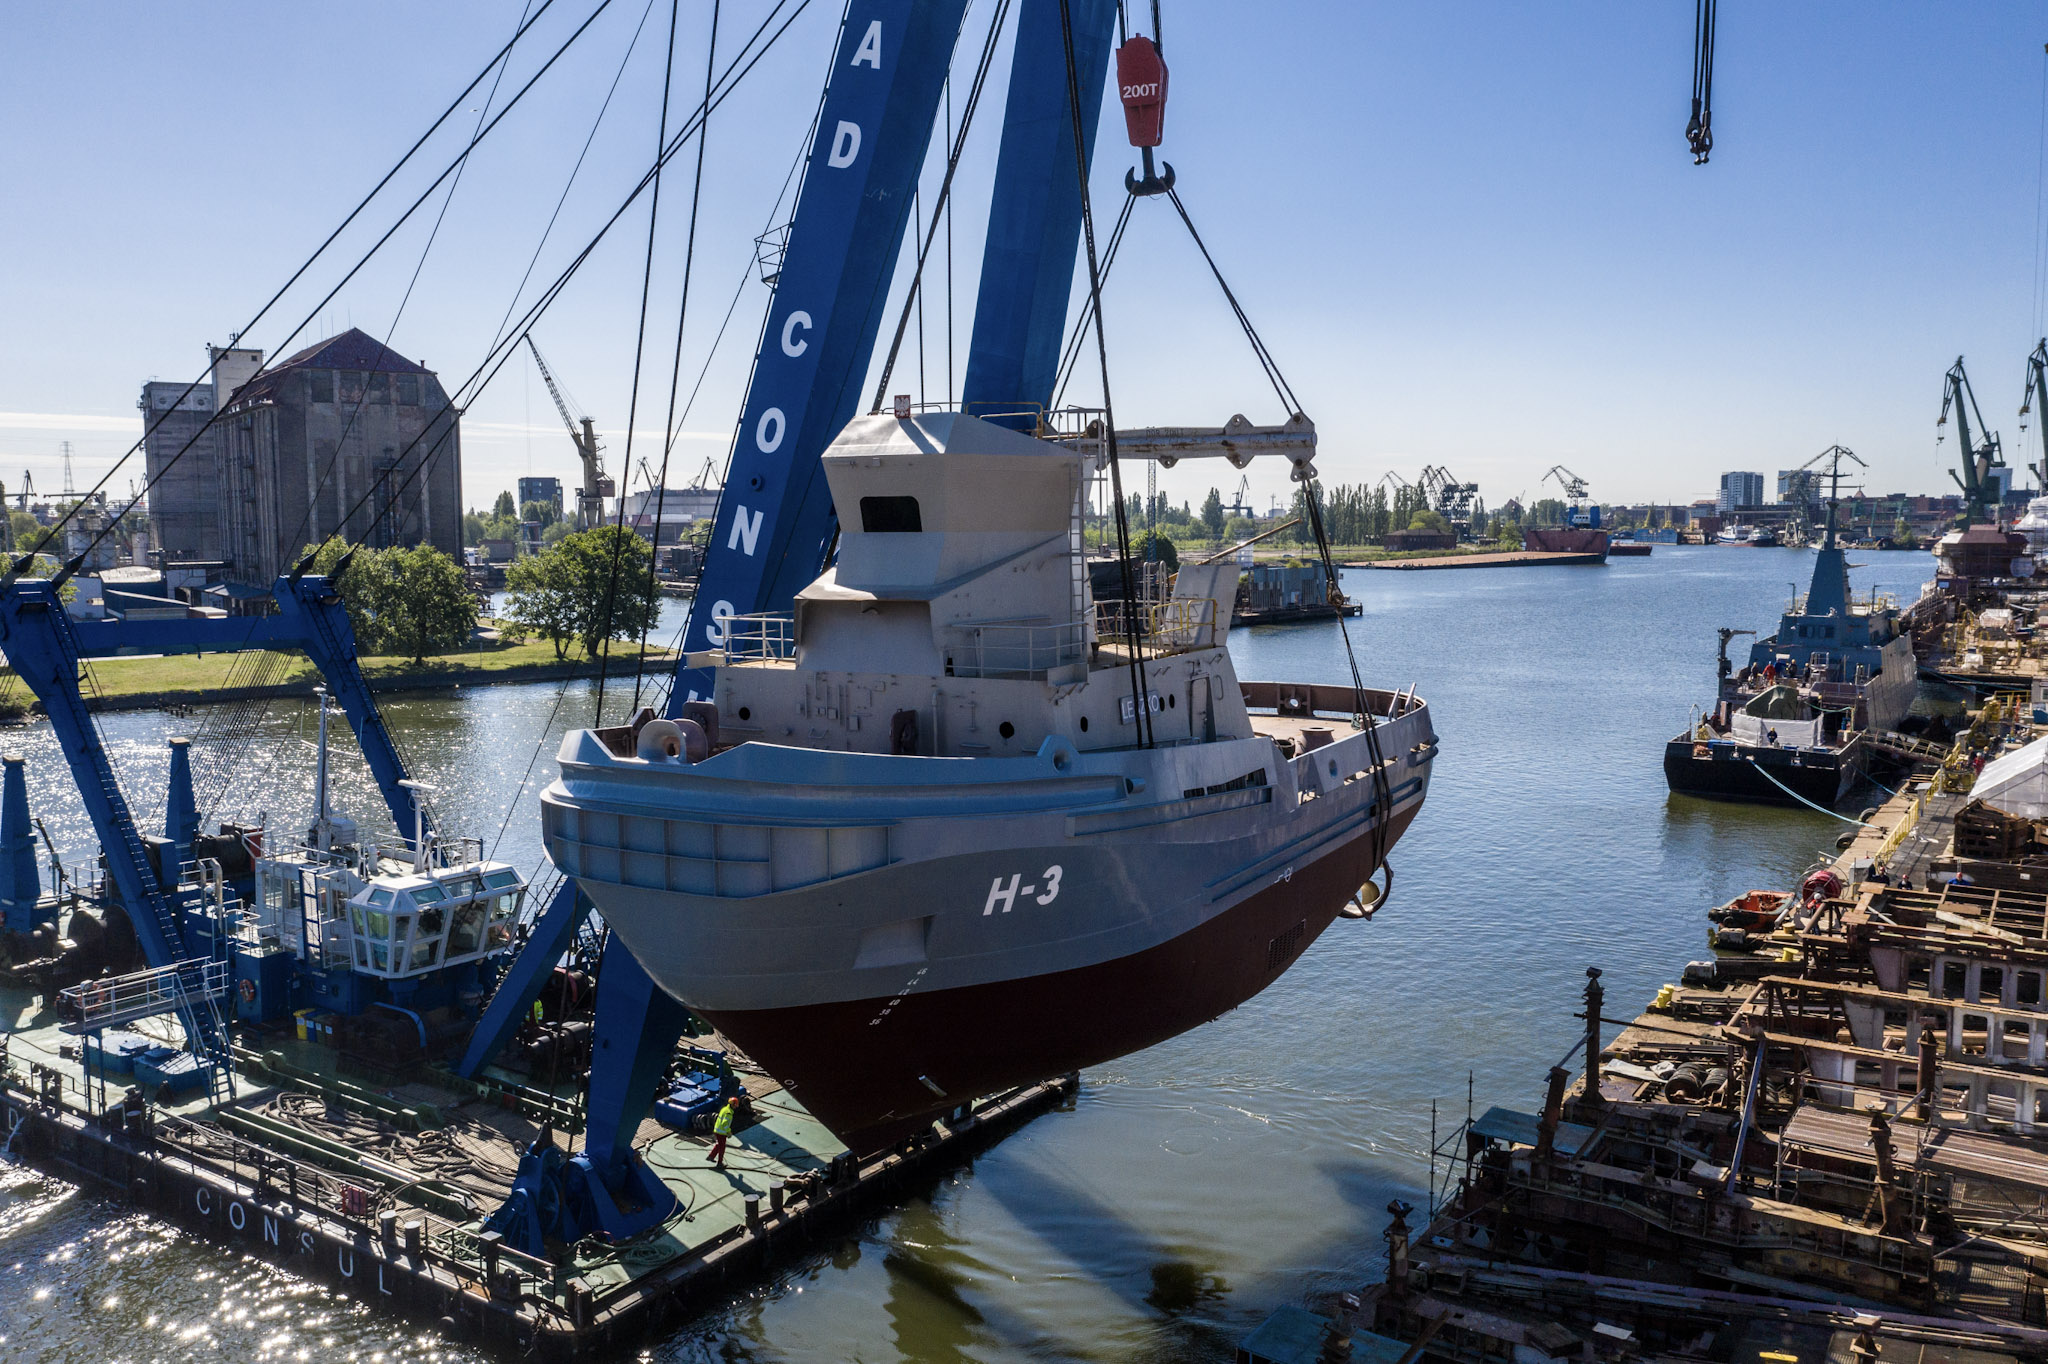 Launching of H-3 tugboat Leszko for the Polish Navy